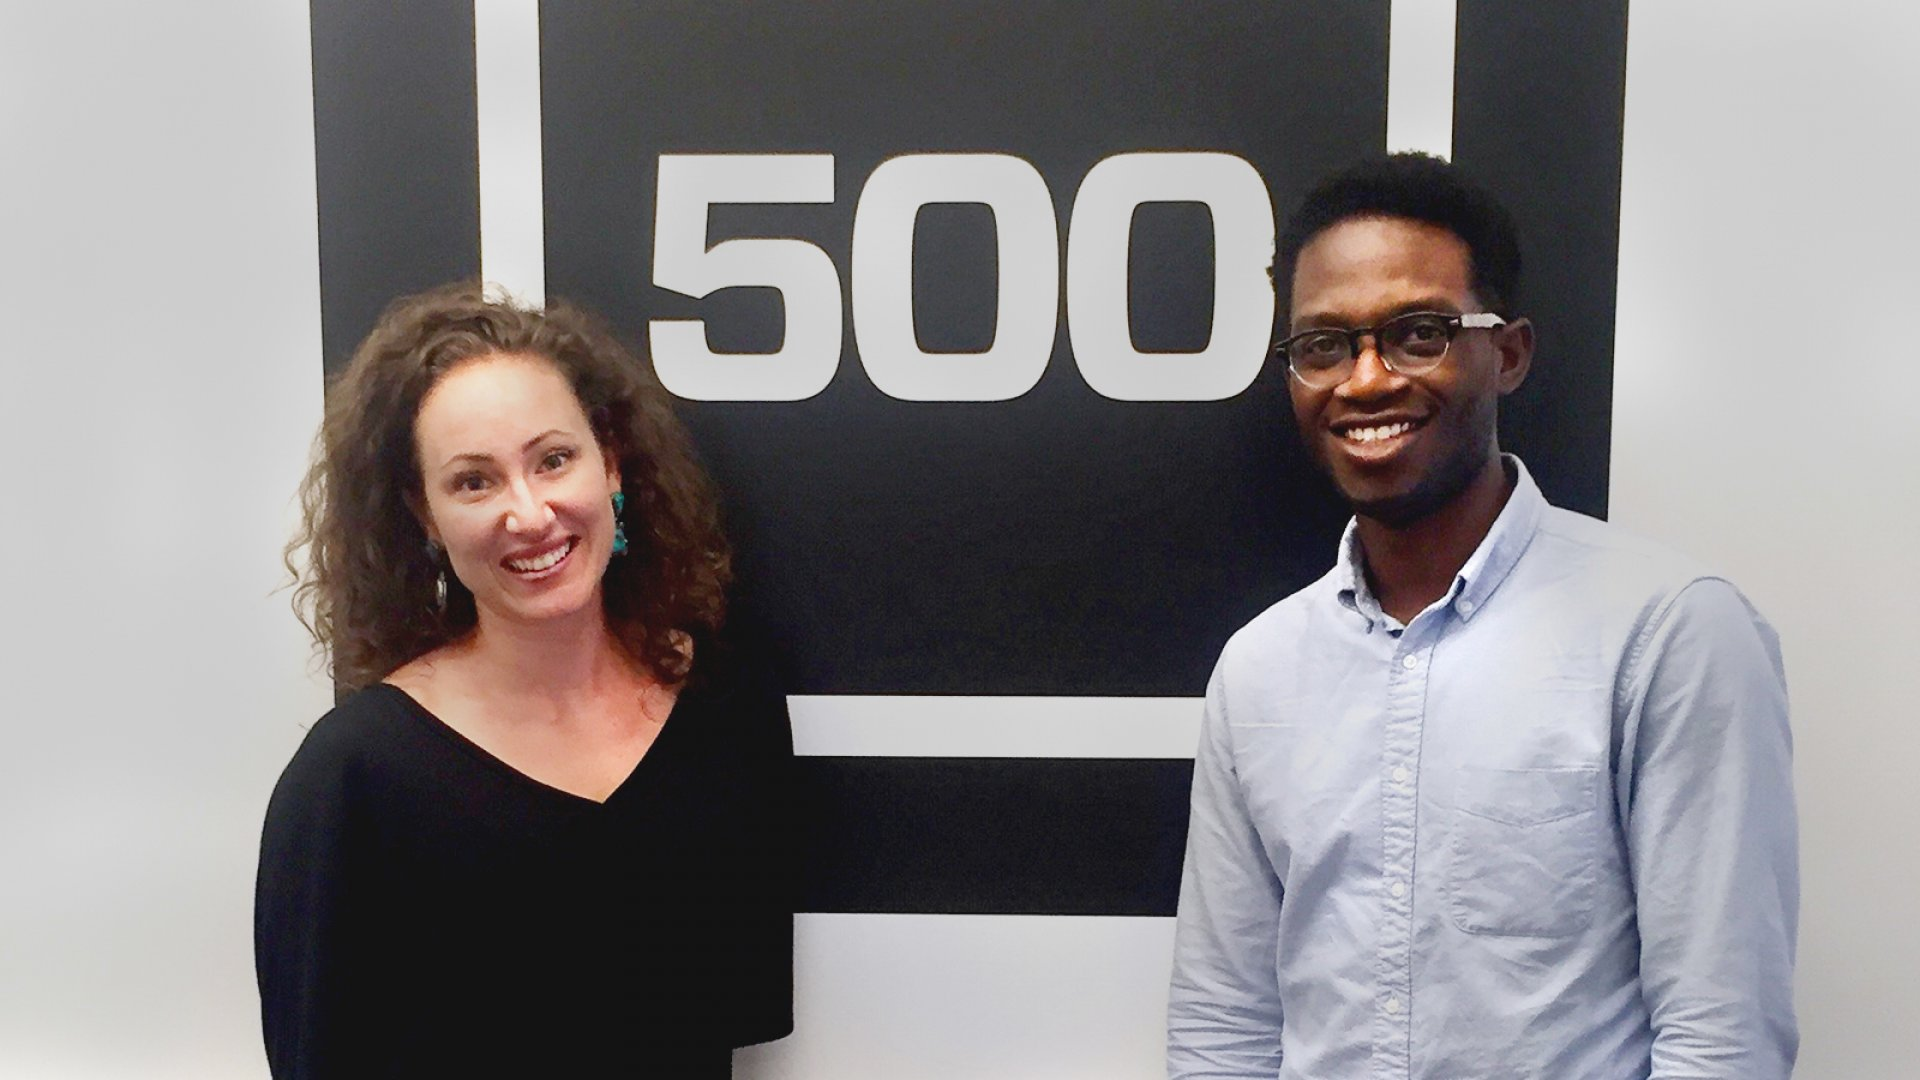 Coley Williams (left) and Dan Miller on Thursday launched Level, an iPhone app that lets users match with clinicians and do therapy sessions via video chat.